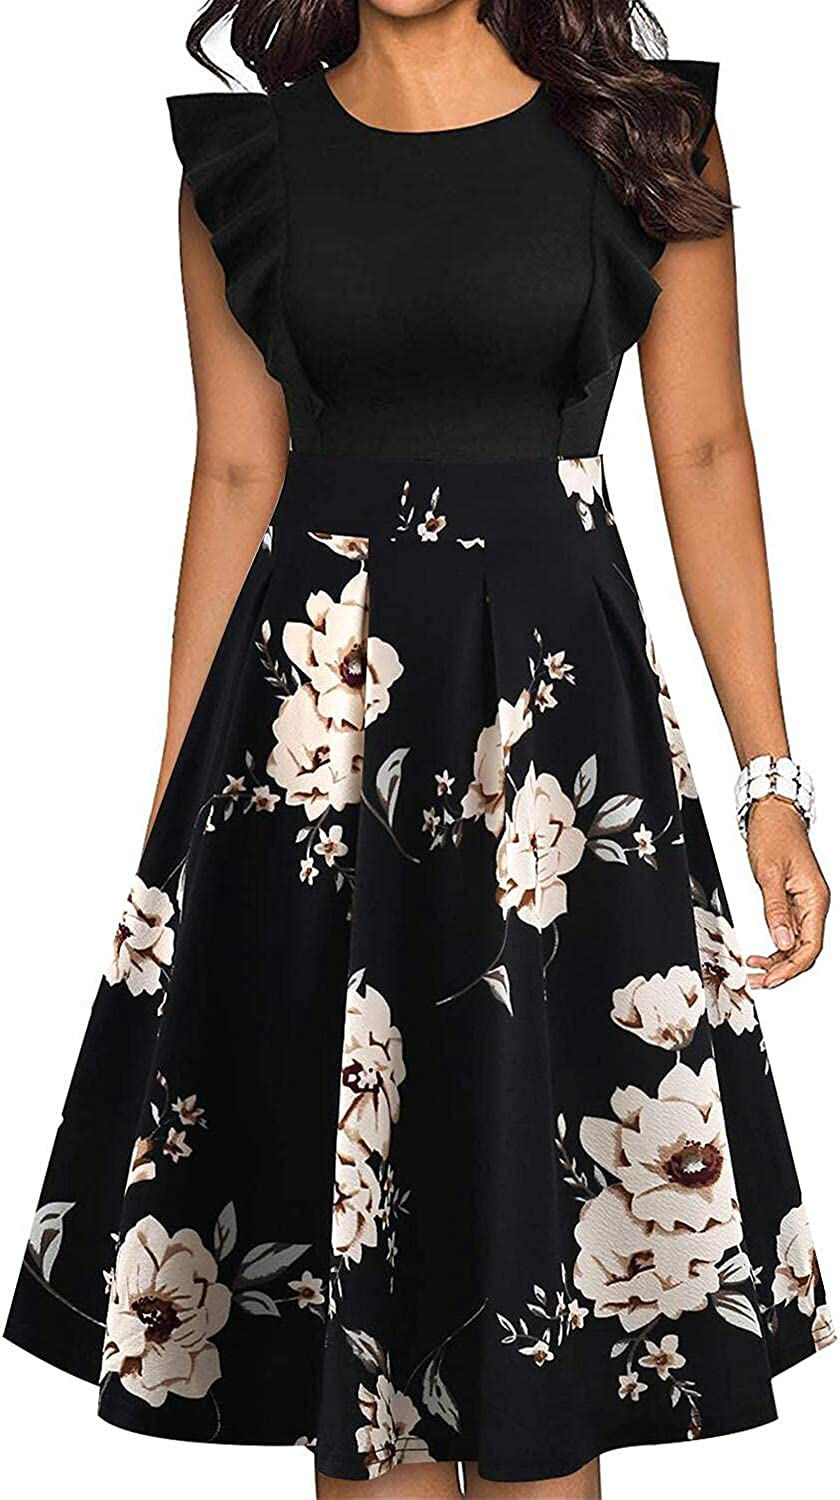 IHOT Womens Vintage Ruffle Sleeves Floral Print Flared A Line Swing Casual Cocktail Party Dresses with Pockets